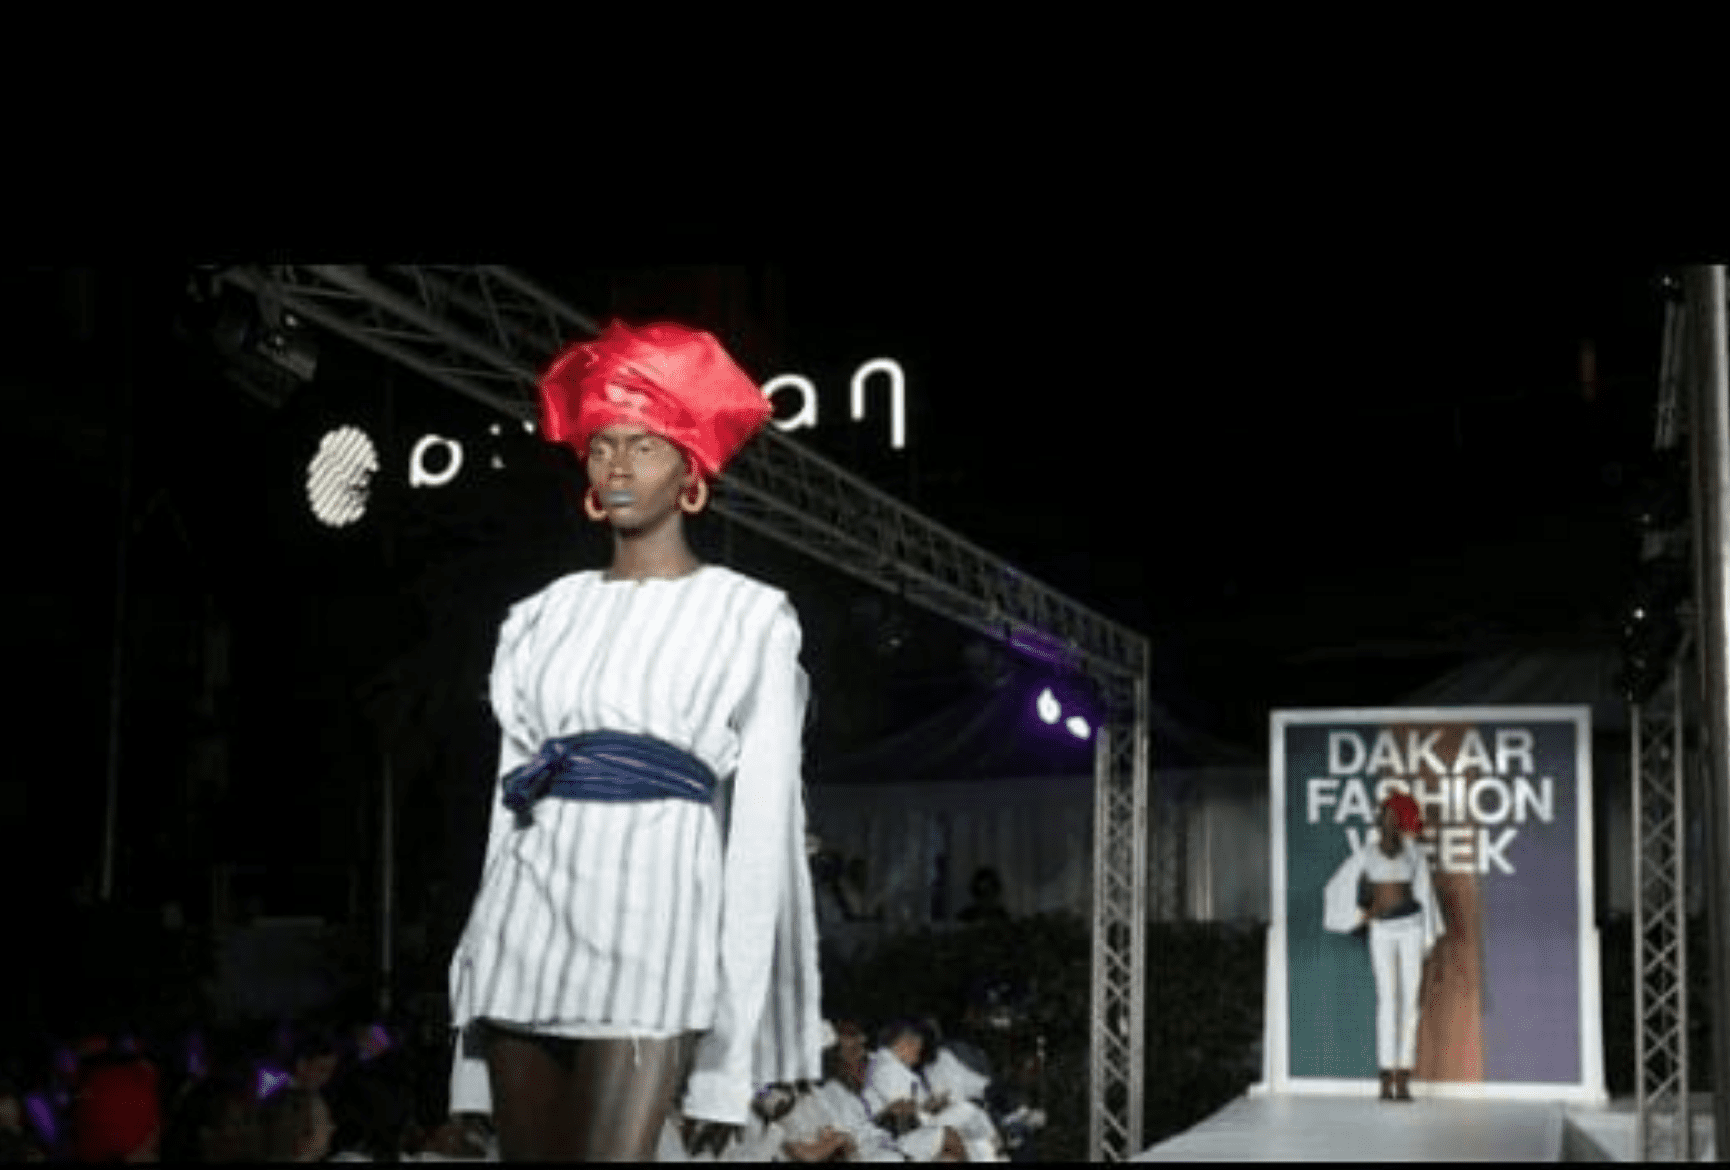 Check out some looks from Dakar's 2018 Fashion Week